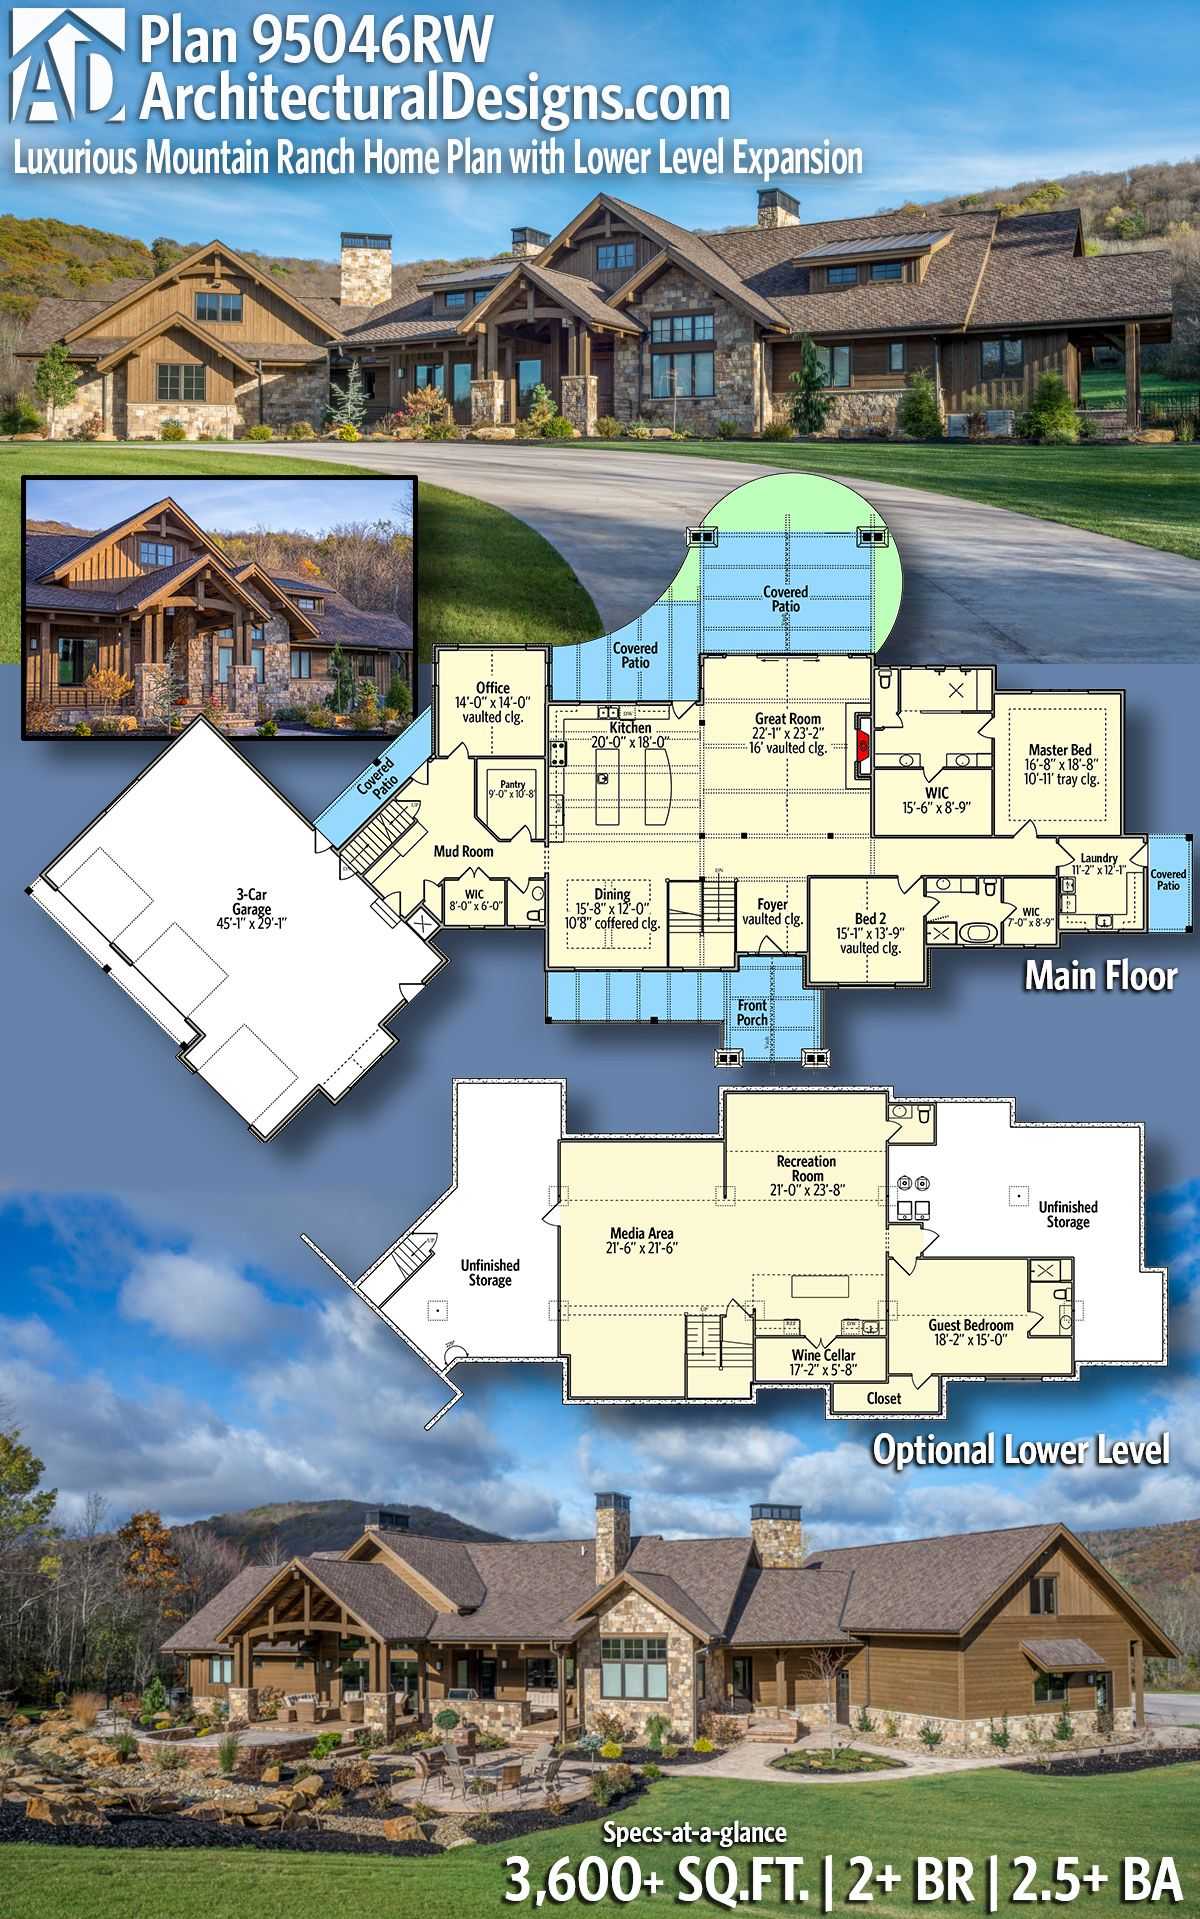 Plan 95046RW: Luxurious Mountain Ranch Home Plan with Lower ... on ranch home floor plans with walkout basement, floor plans open kitchen with cathedral ceiling, ranch house with cathedral ceiling, ranch house vaulted ceiling,